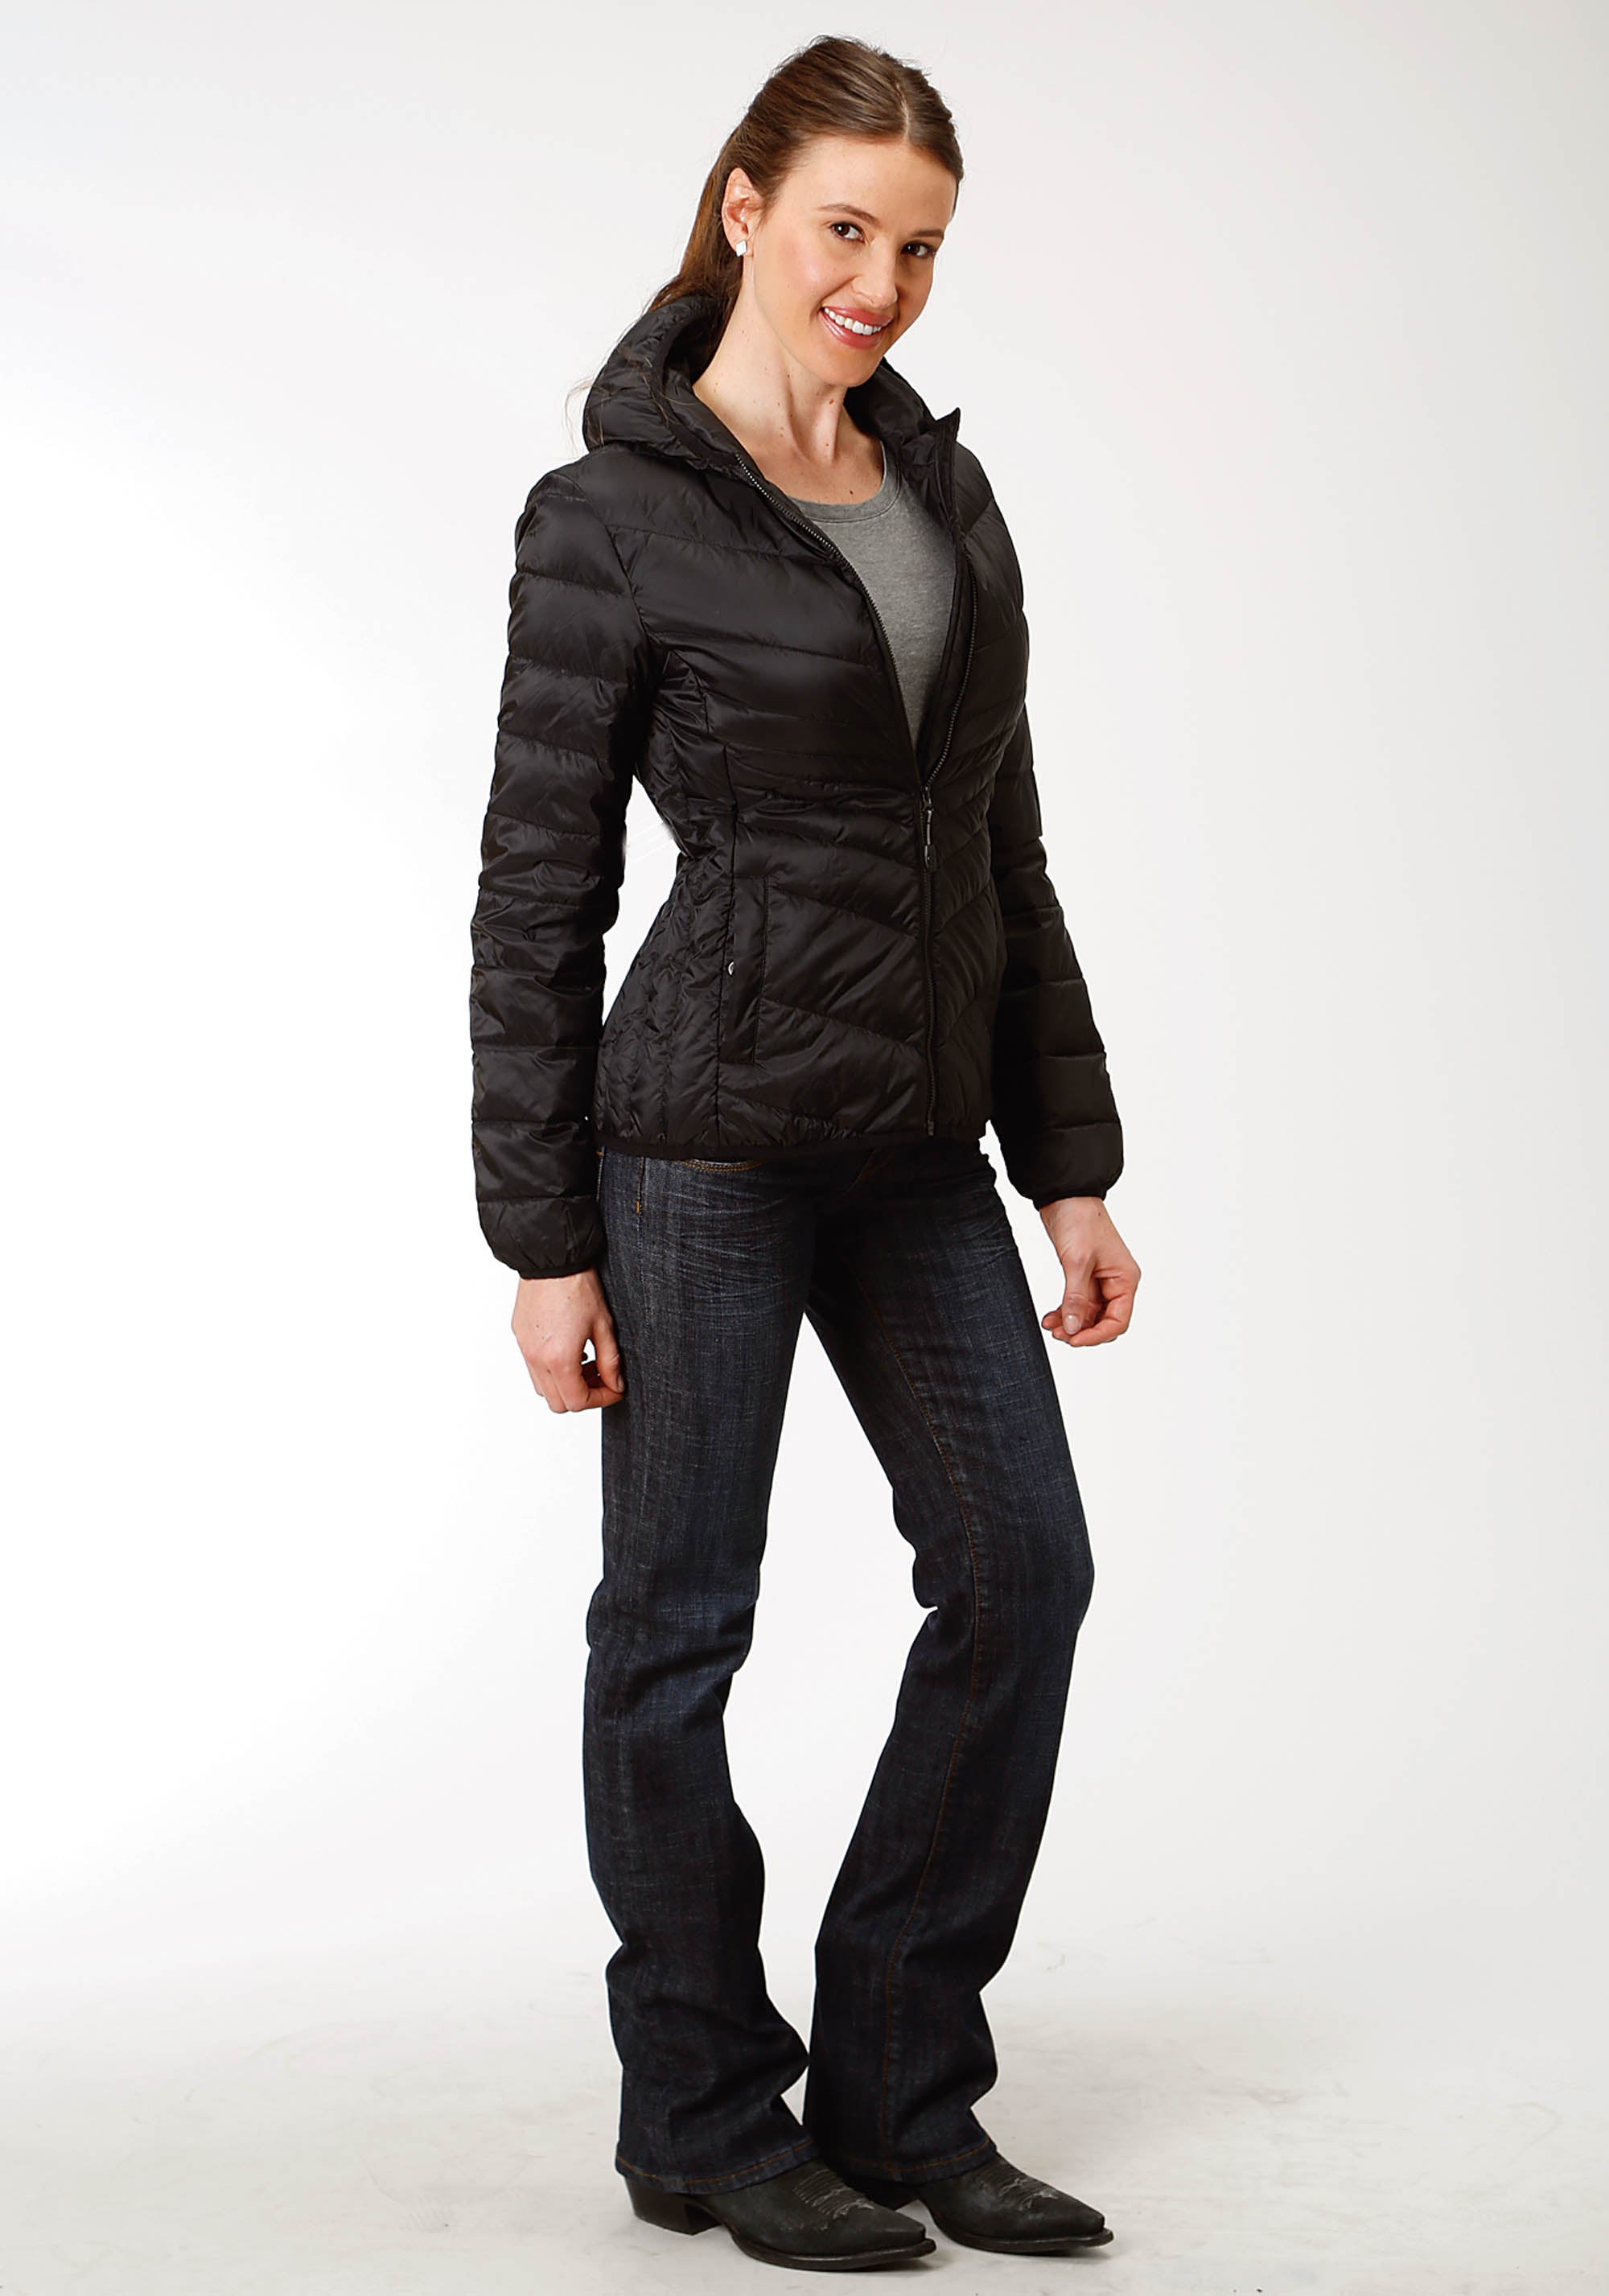 ROPER WOMENS BLACK 4043 DOWN PROOF COATED JACKET W/HOOD ROPER OUTERWEAR- LADIES JACKET